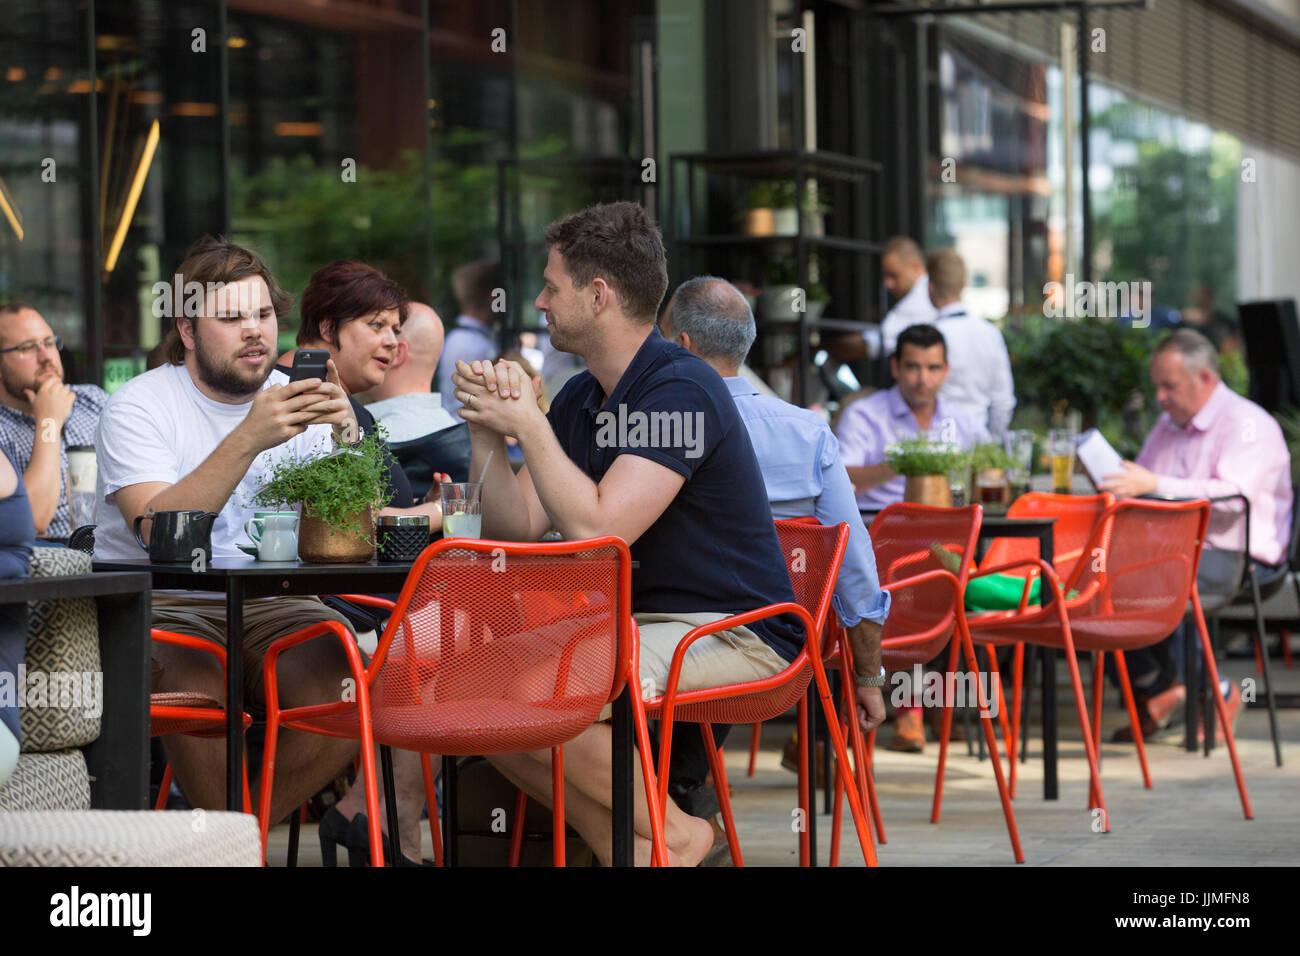 Lunch in the modern newly regenerated area of King's Cross, London - Stock Image